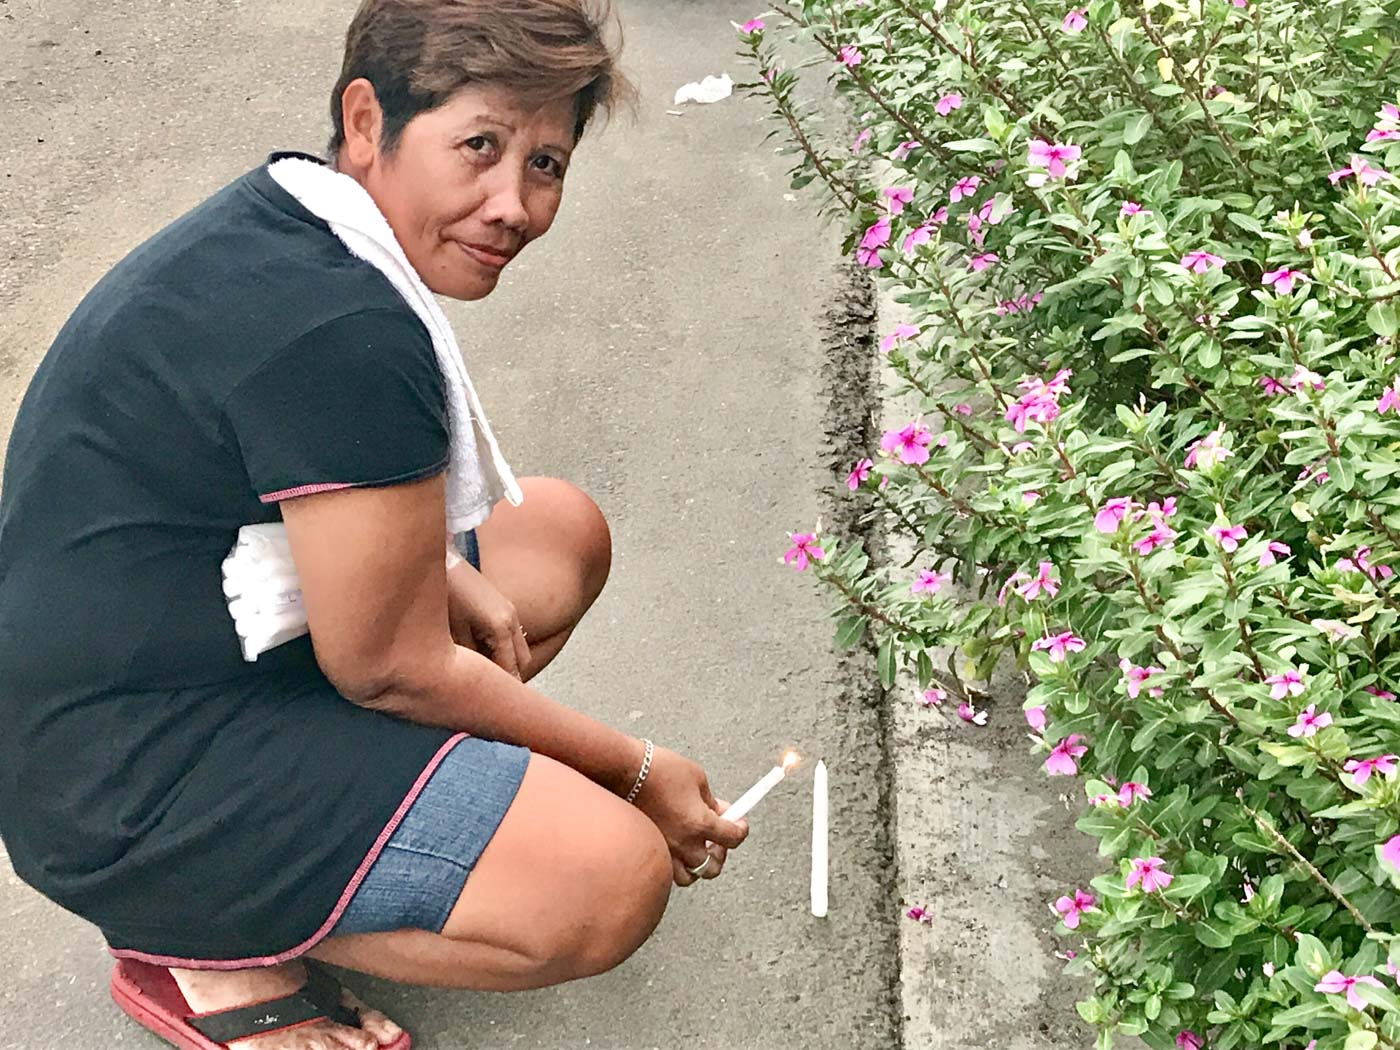 HOPE STILL REMAINS. Analyn Pajares, 43, is a resident of Barangay 88 San Jose. She lights a candle for her sibling who has yet to be found since Super Typhoon Yolanda. She has not lost hope that someday, her sibling will come home. Photo by Jene-Anne Pangue